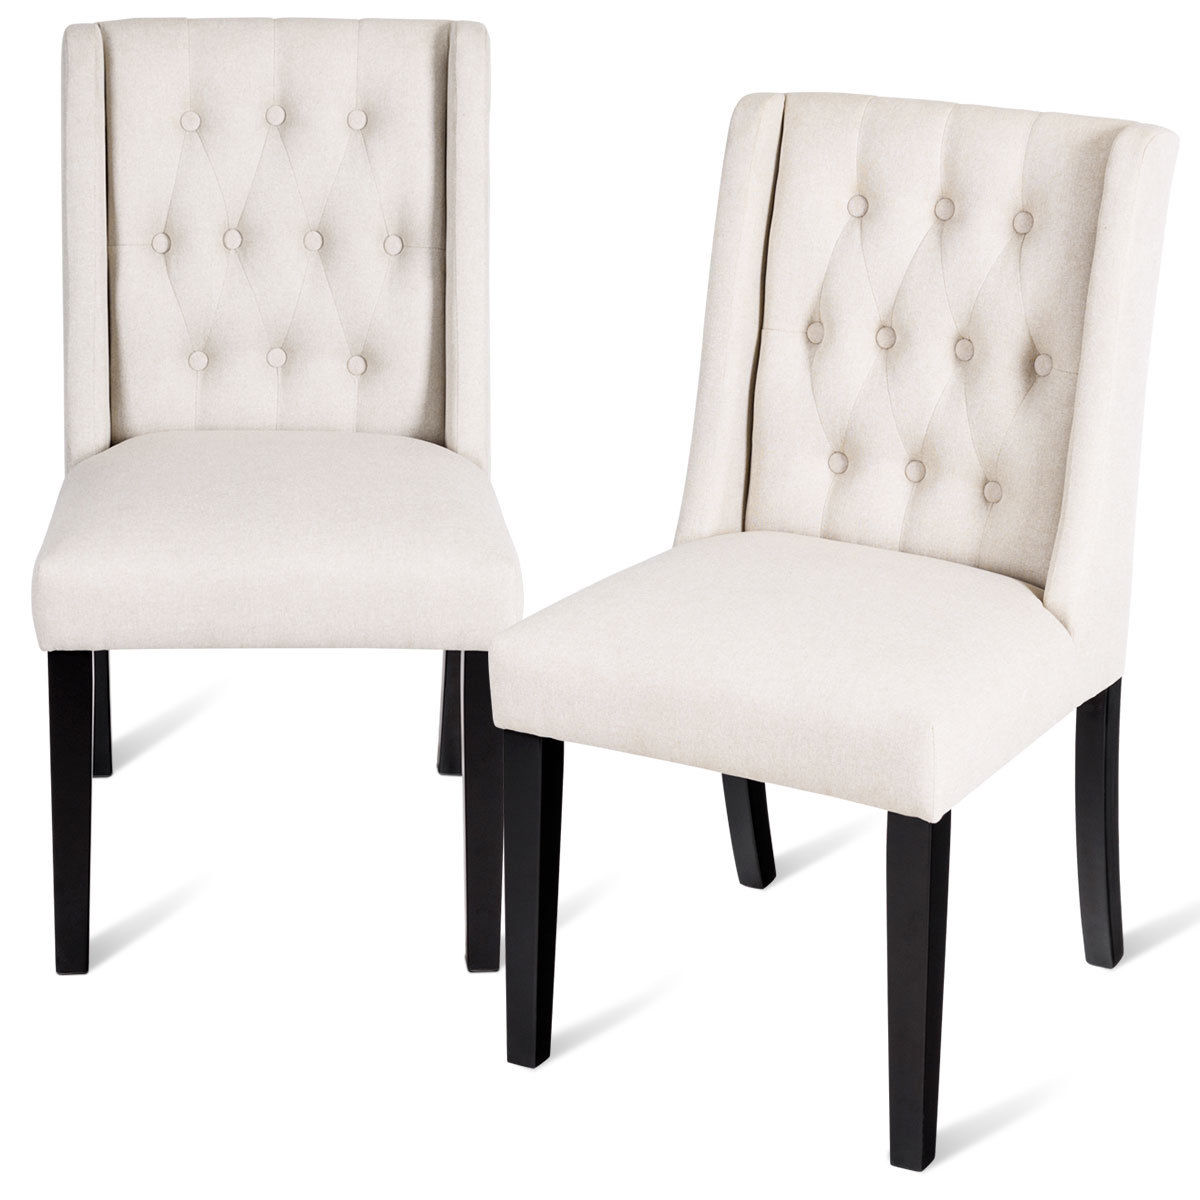 Costway Set of 2 Dining Side Chairs Wing Back Button Tufted Fabric with Wood Legs Beige